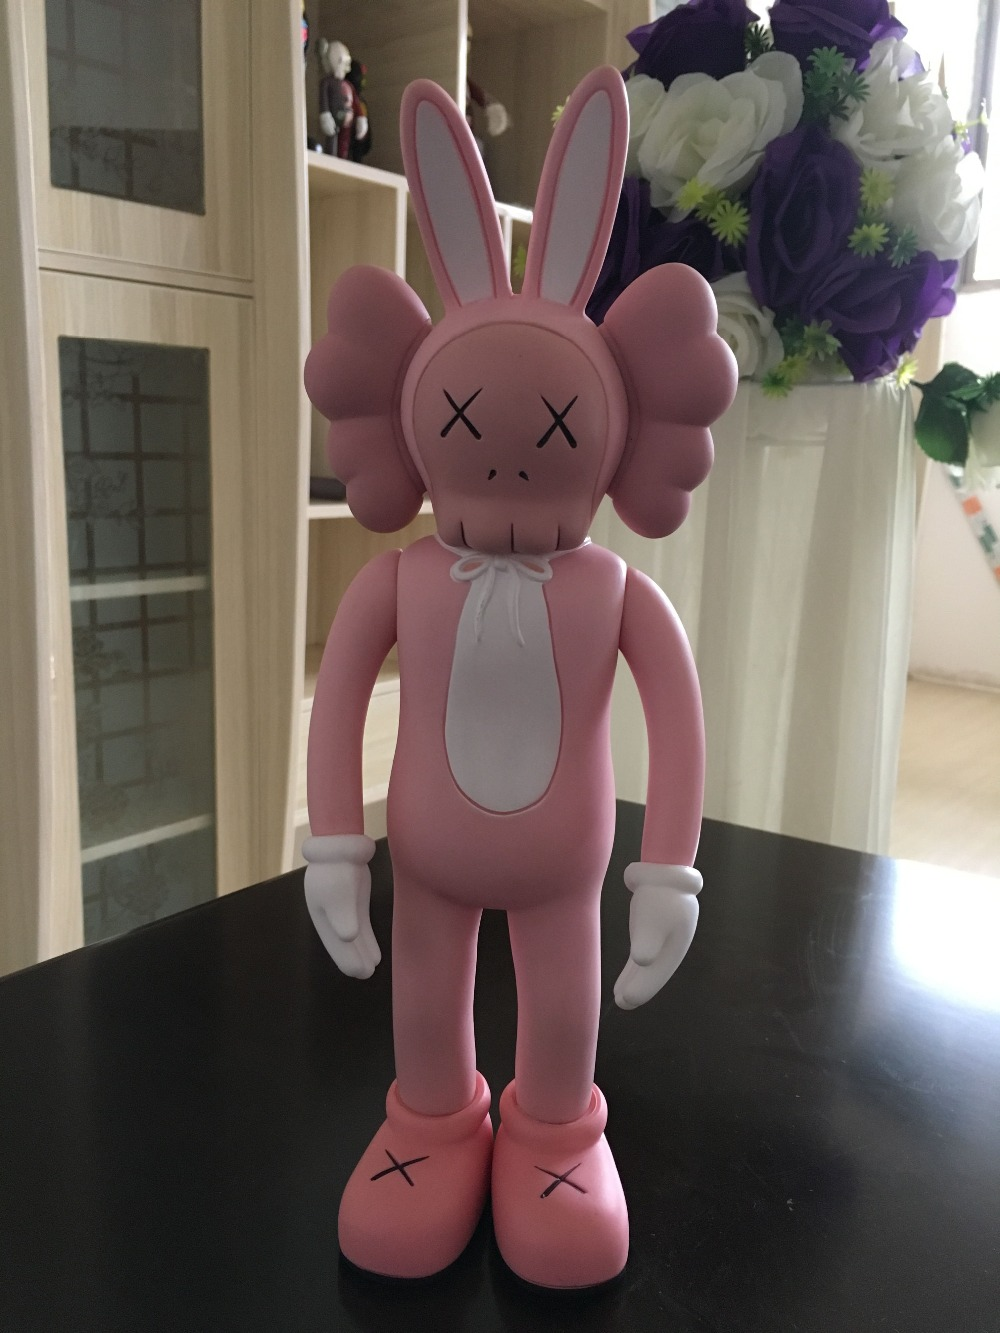 [Top] 30cm OrigialFake Black/Pink KAWS Rabbit girl Maid toy Original Fake Action Figure Collection Model gift[Top] 30cm OrigialFake Black/Pink KAWS Rabbit girl Maid toy Original Fake Action Figure Collection Model gift